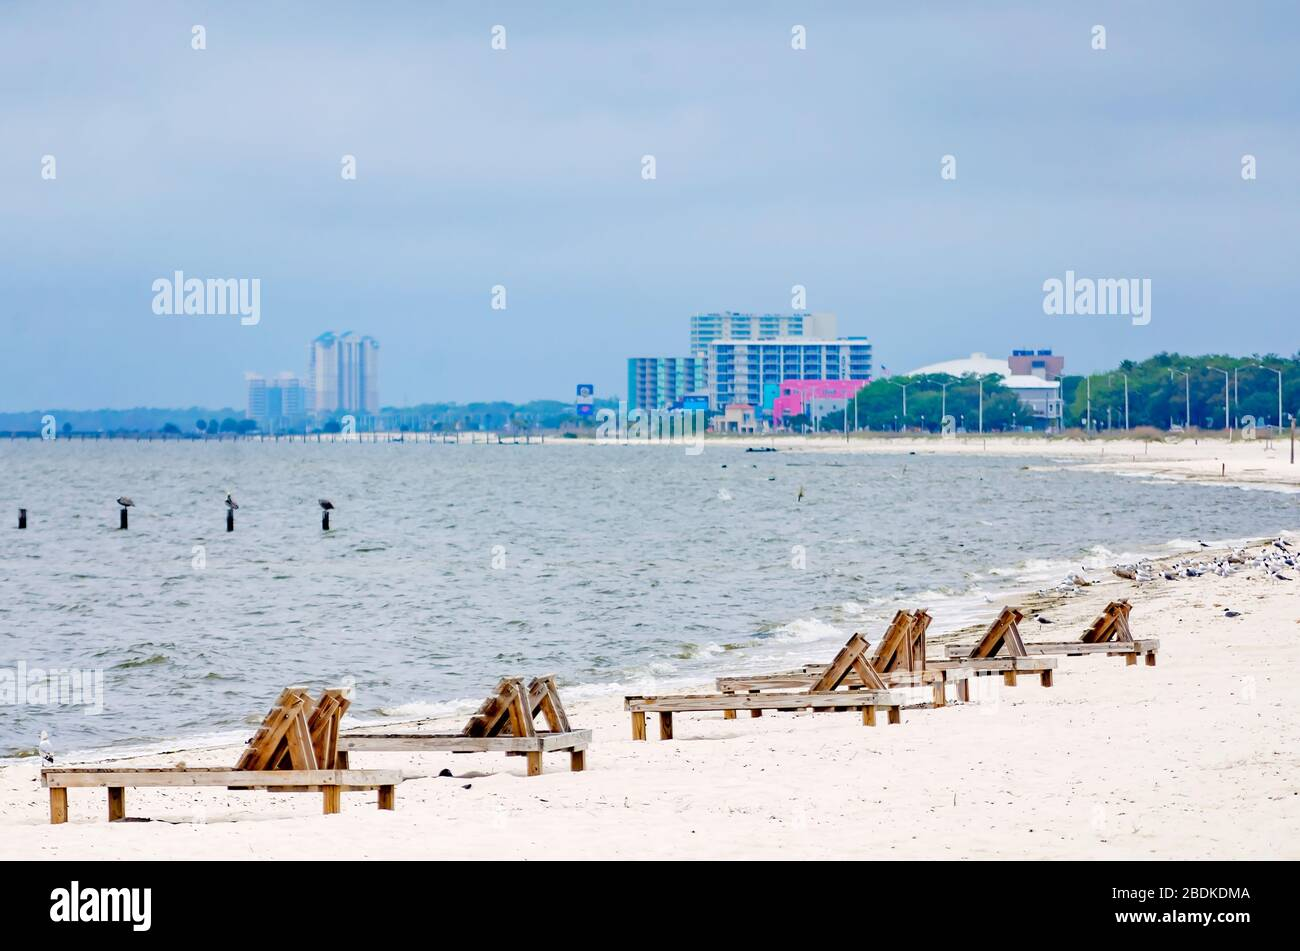 Coronavirus South Beach High Resolution Stock Photography And